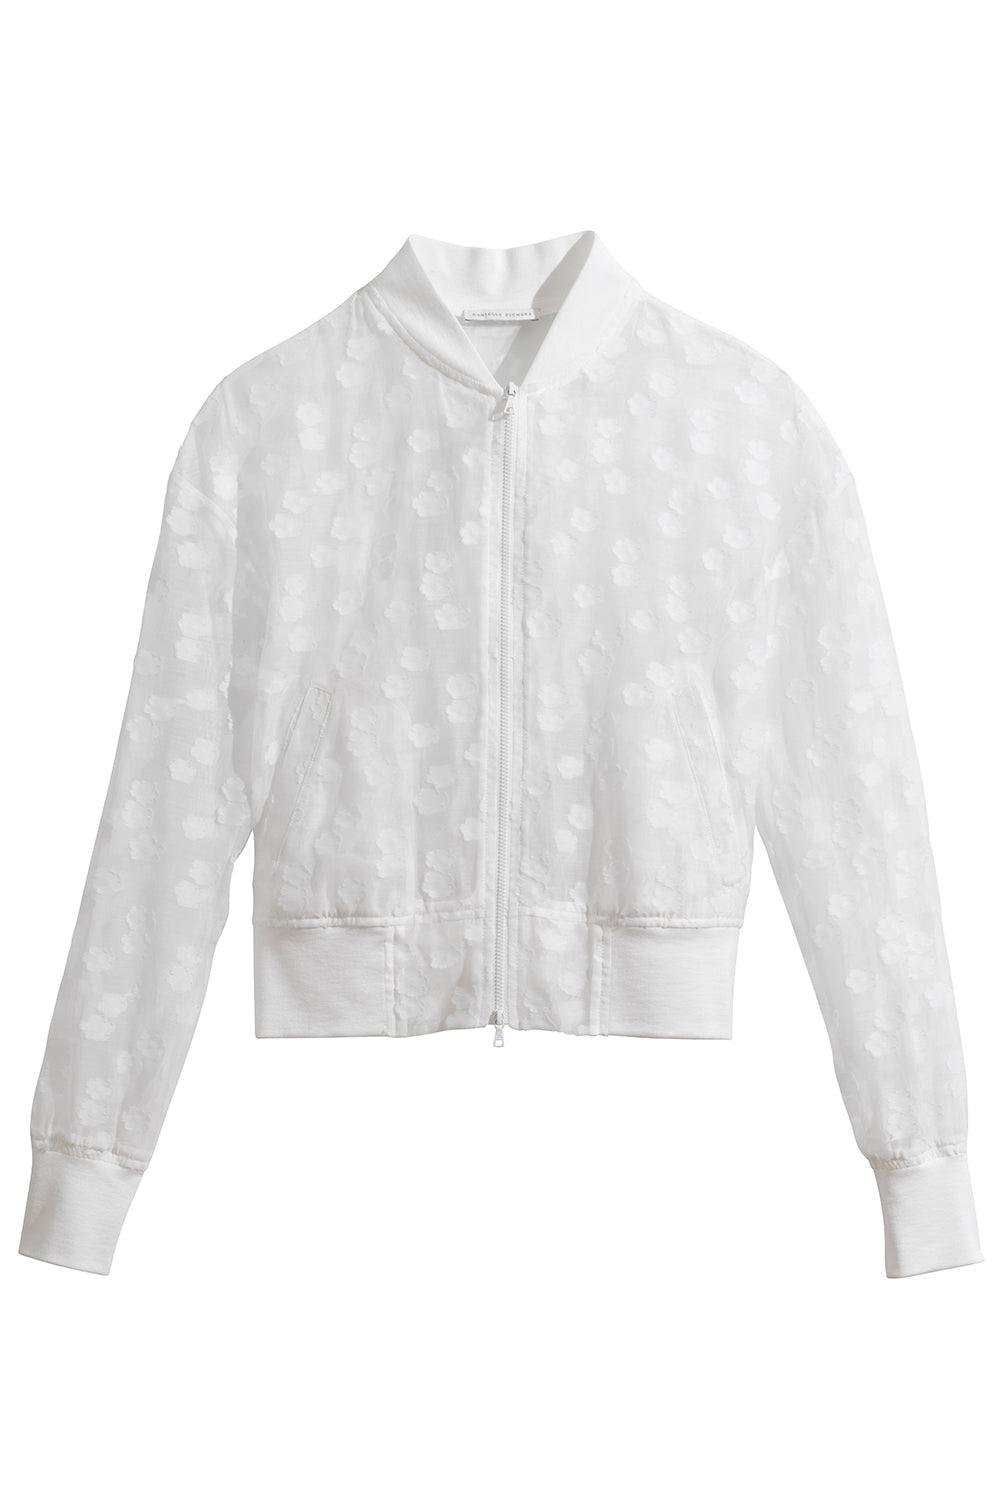 Eloisia Bomber Jacket in White